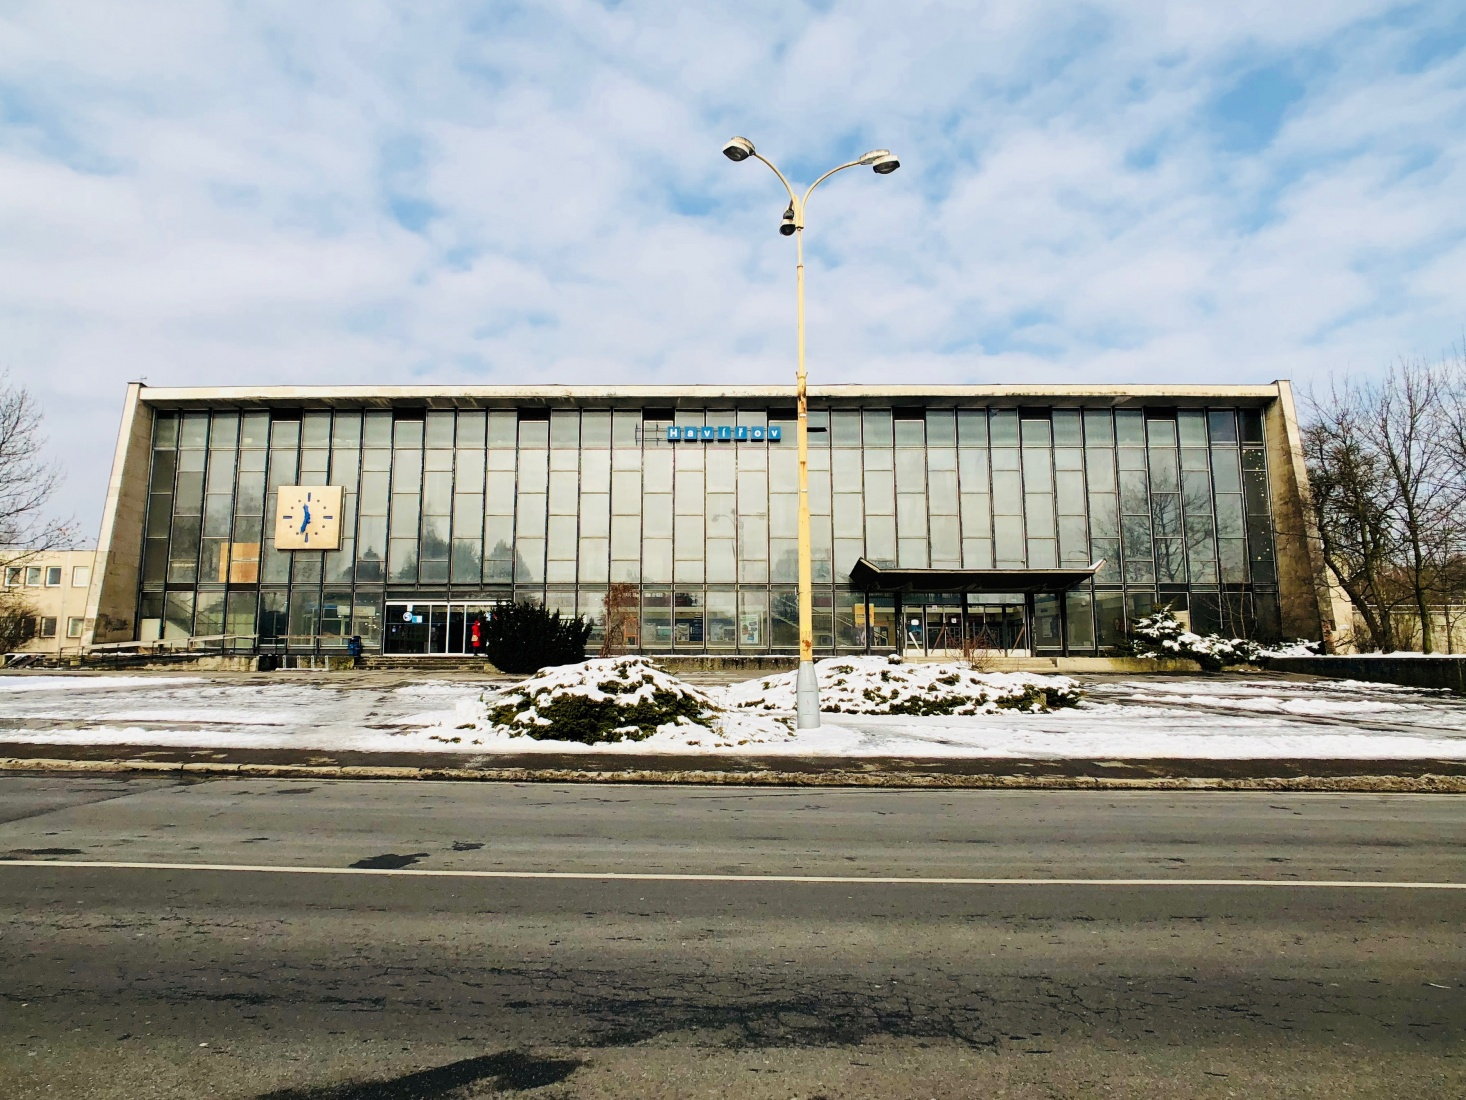 The train station exterior, the trapezoidal shape, like a TV from the 1950s, visible outside, in the Czech-Silesian mining city of Havířov, Czech Republic.